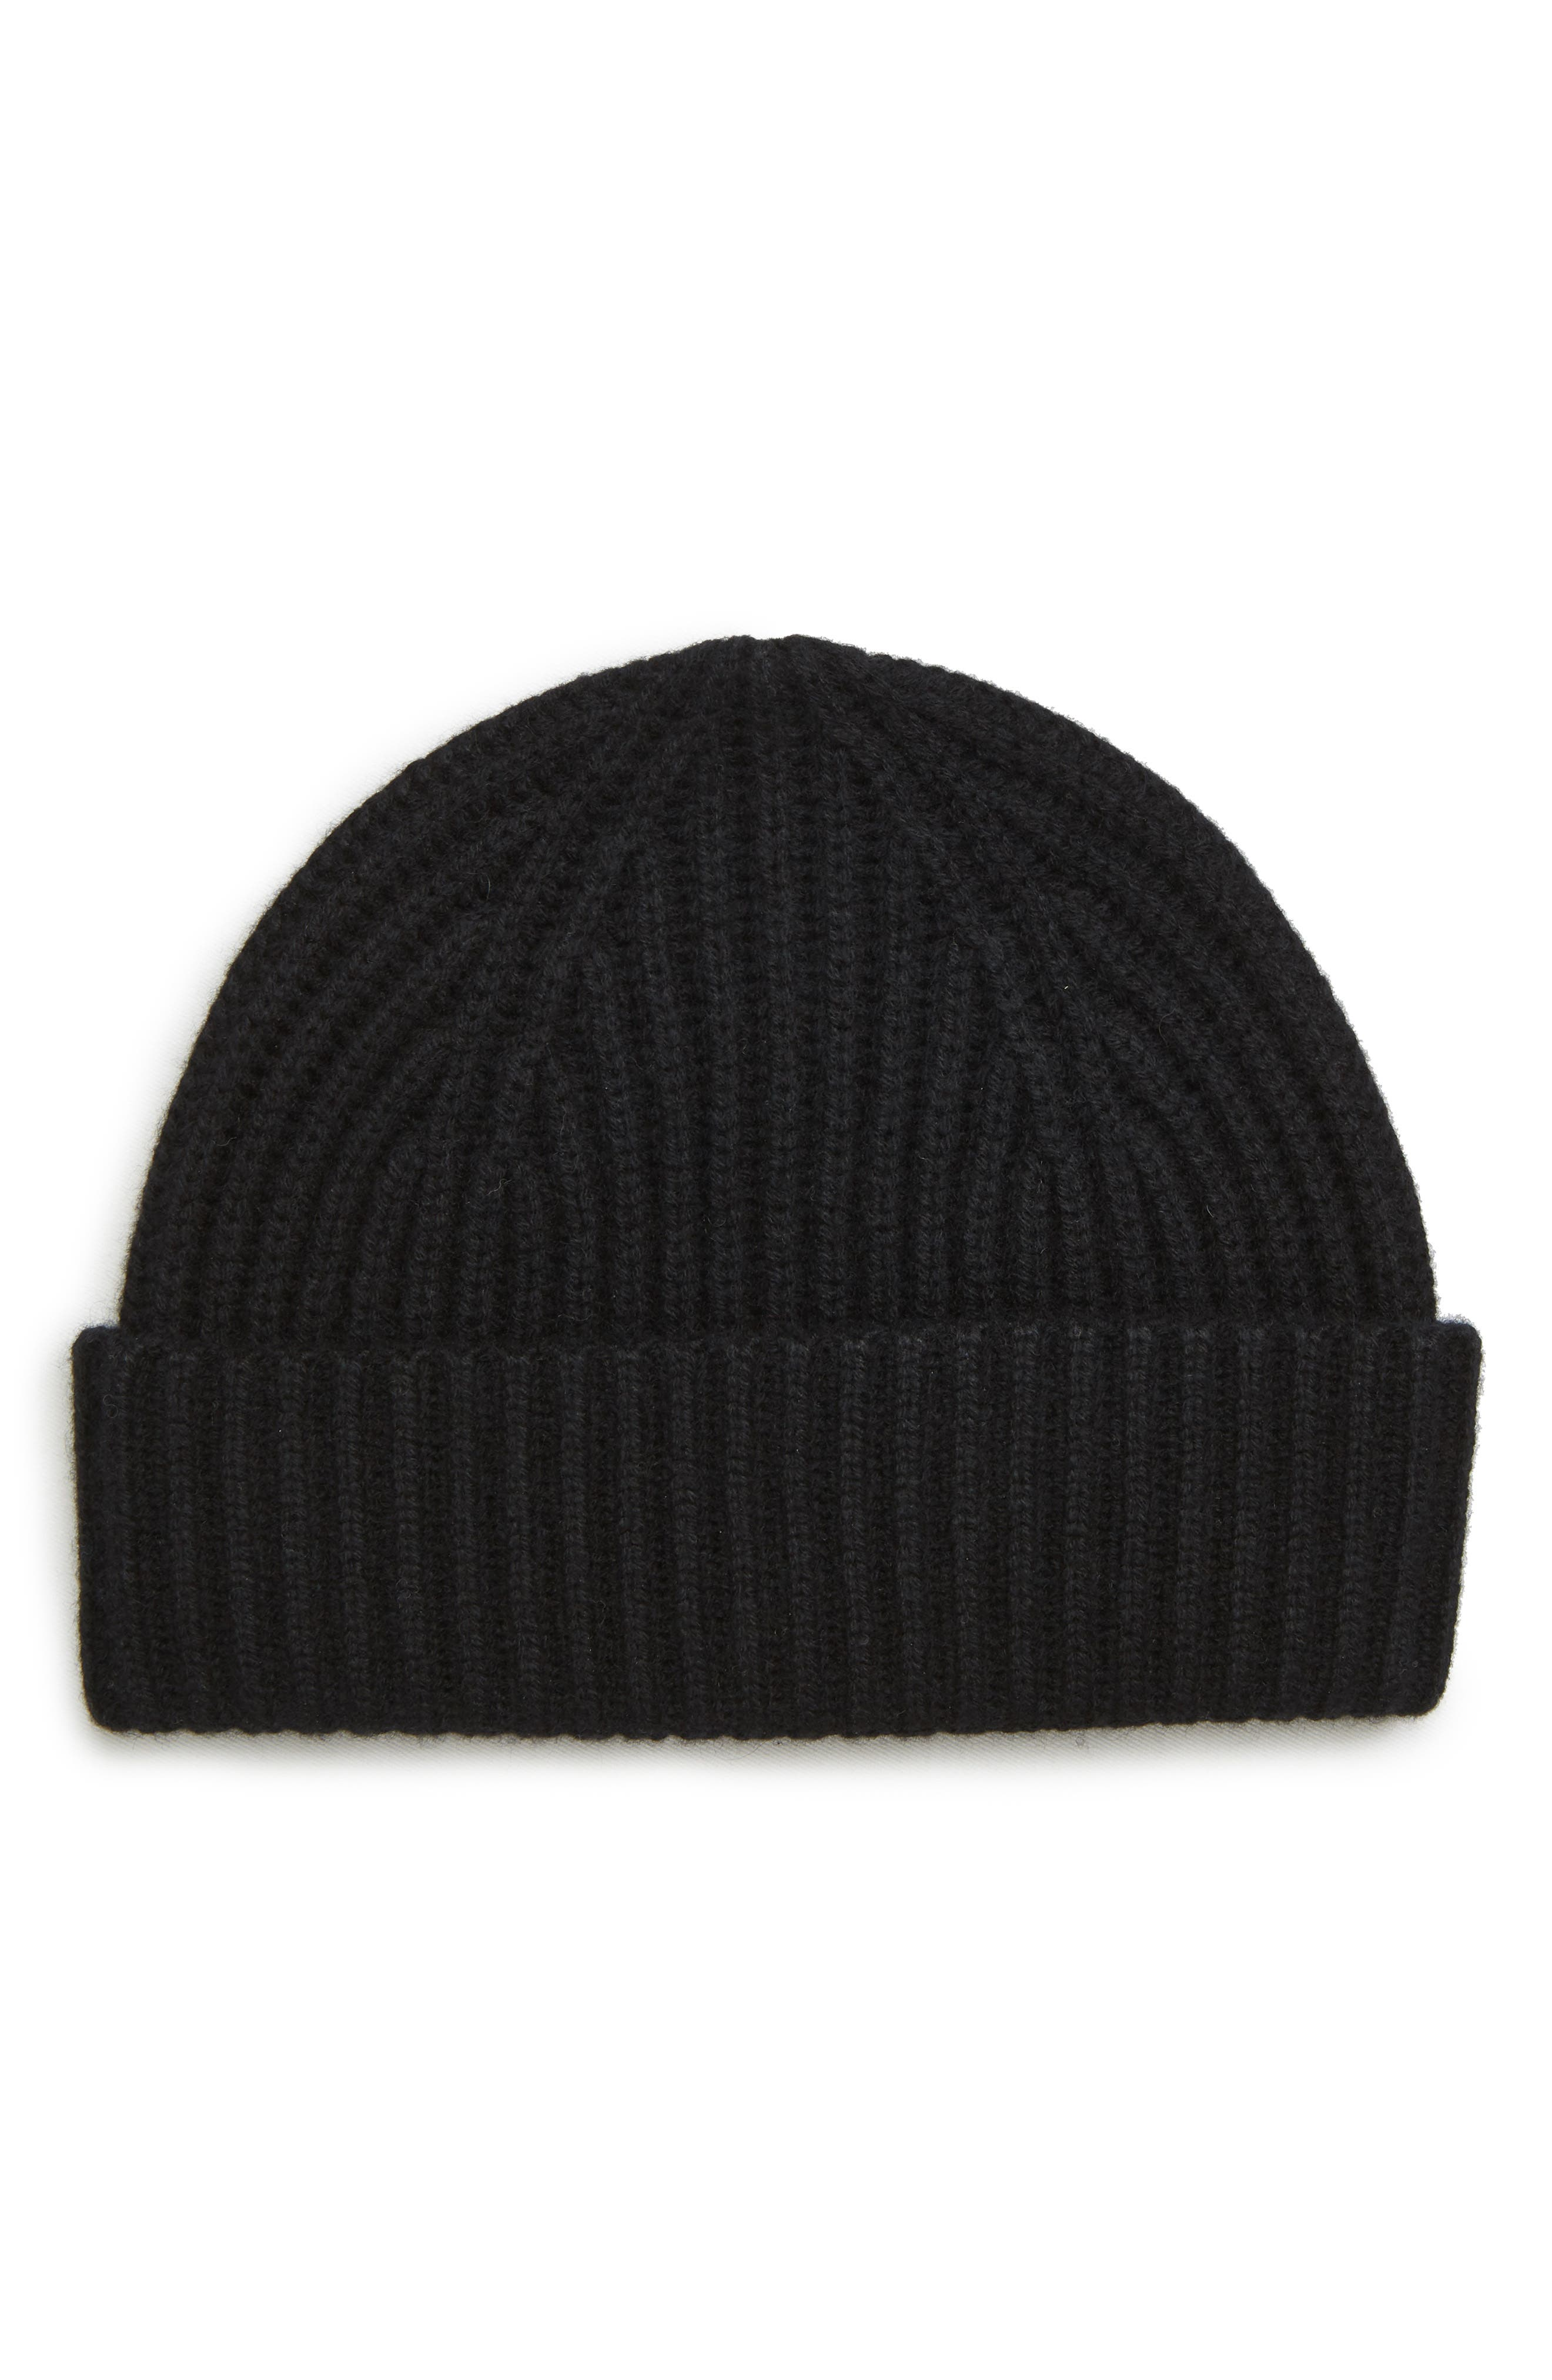 Cashmere Knit Cap,                             Main thumbnail 1, color,                             BLACK